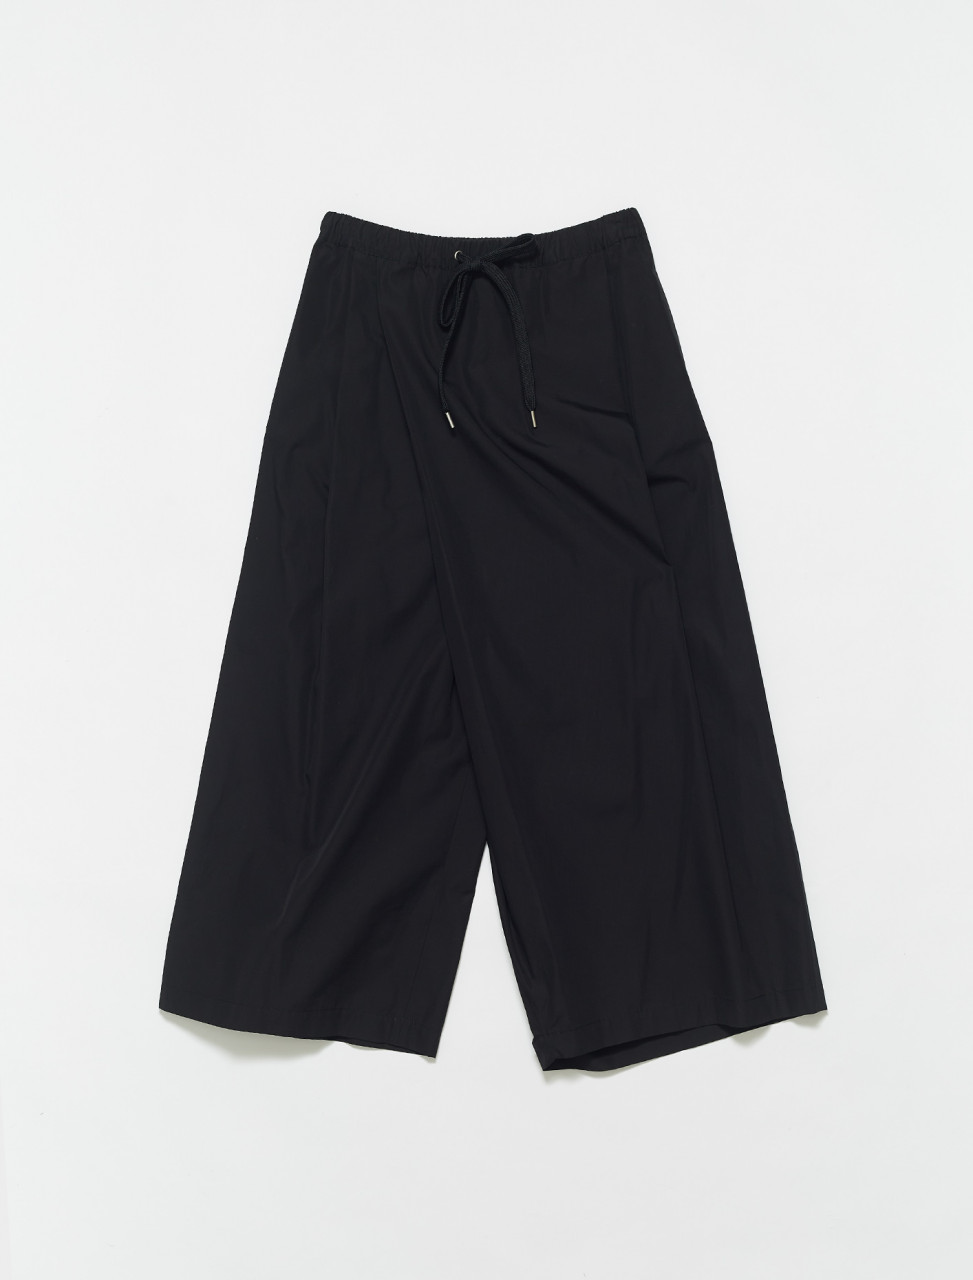 PAMA0074A1-00N99 MARNI WOVEN COTTON TROUSER BLACK